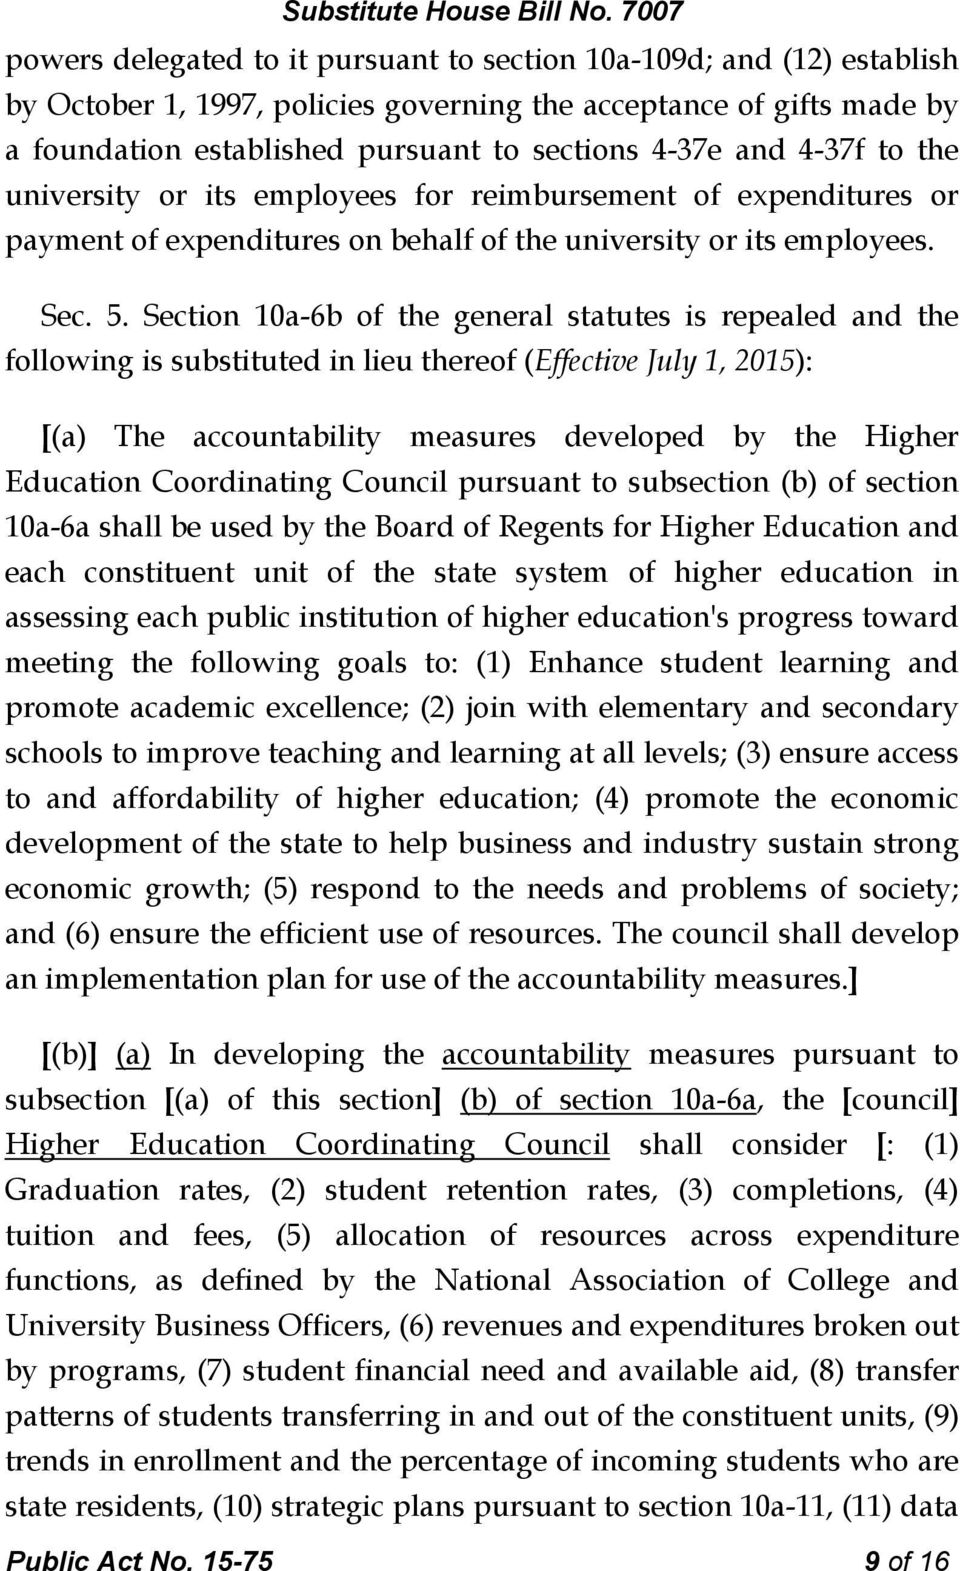 Section 10a-6b of the general statutes is repealed and the following is substituted in lieu thereof (Effective July 1, 2015): [(a) The accountability measures developed by the Higher Education